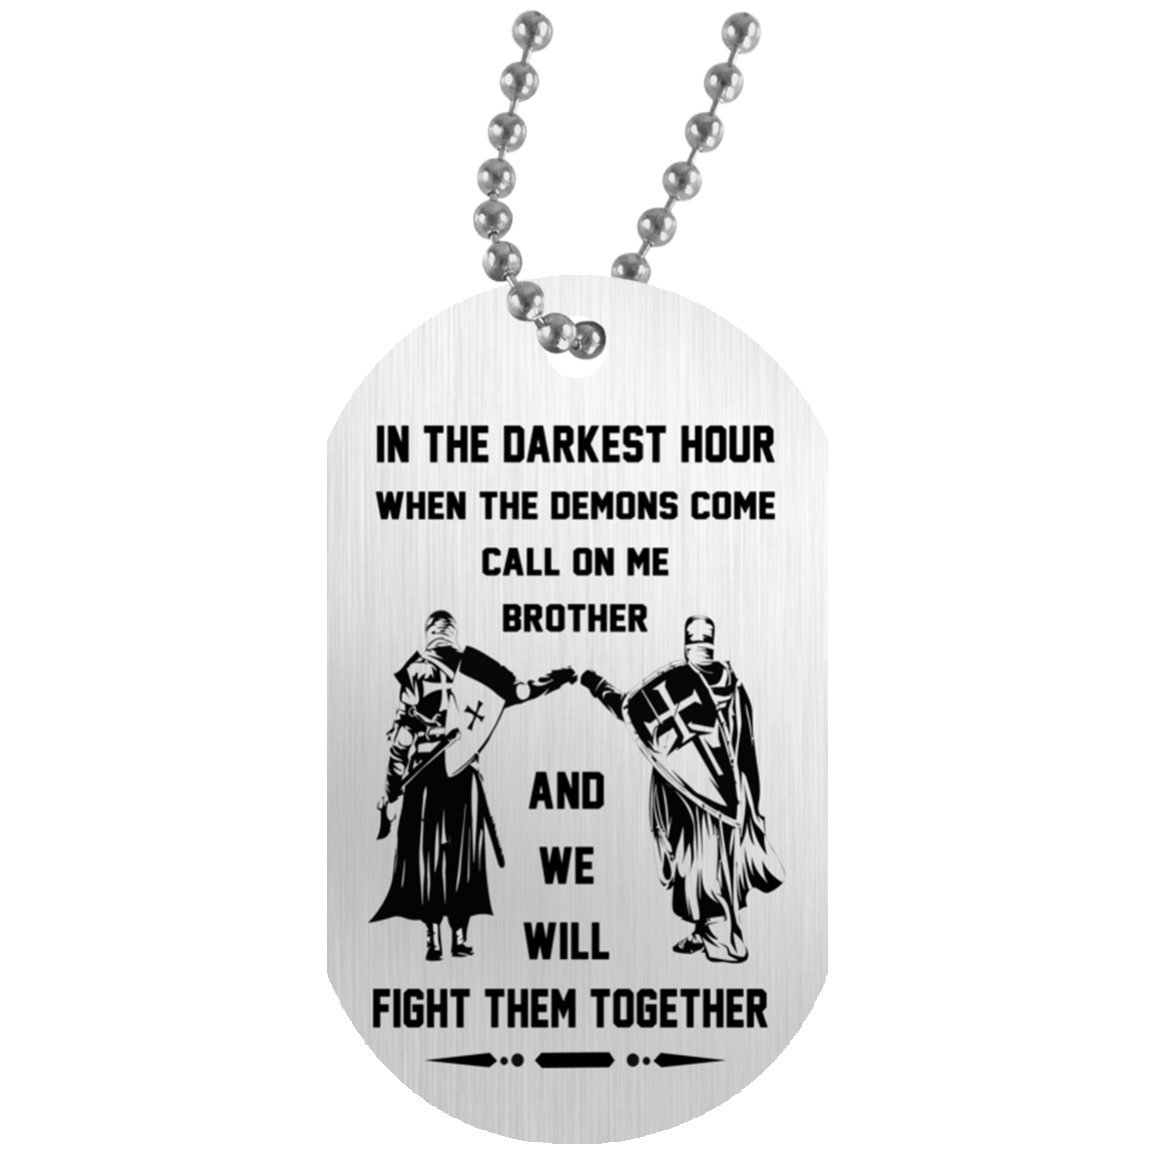 Personalized Brother Dog Tag Pendant Necklace - Viking Warriors, We Will Fight Them Together - Personalized Gifts for Men, Brother, Friends - Military Inspired Dog tag Shineon